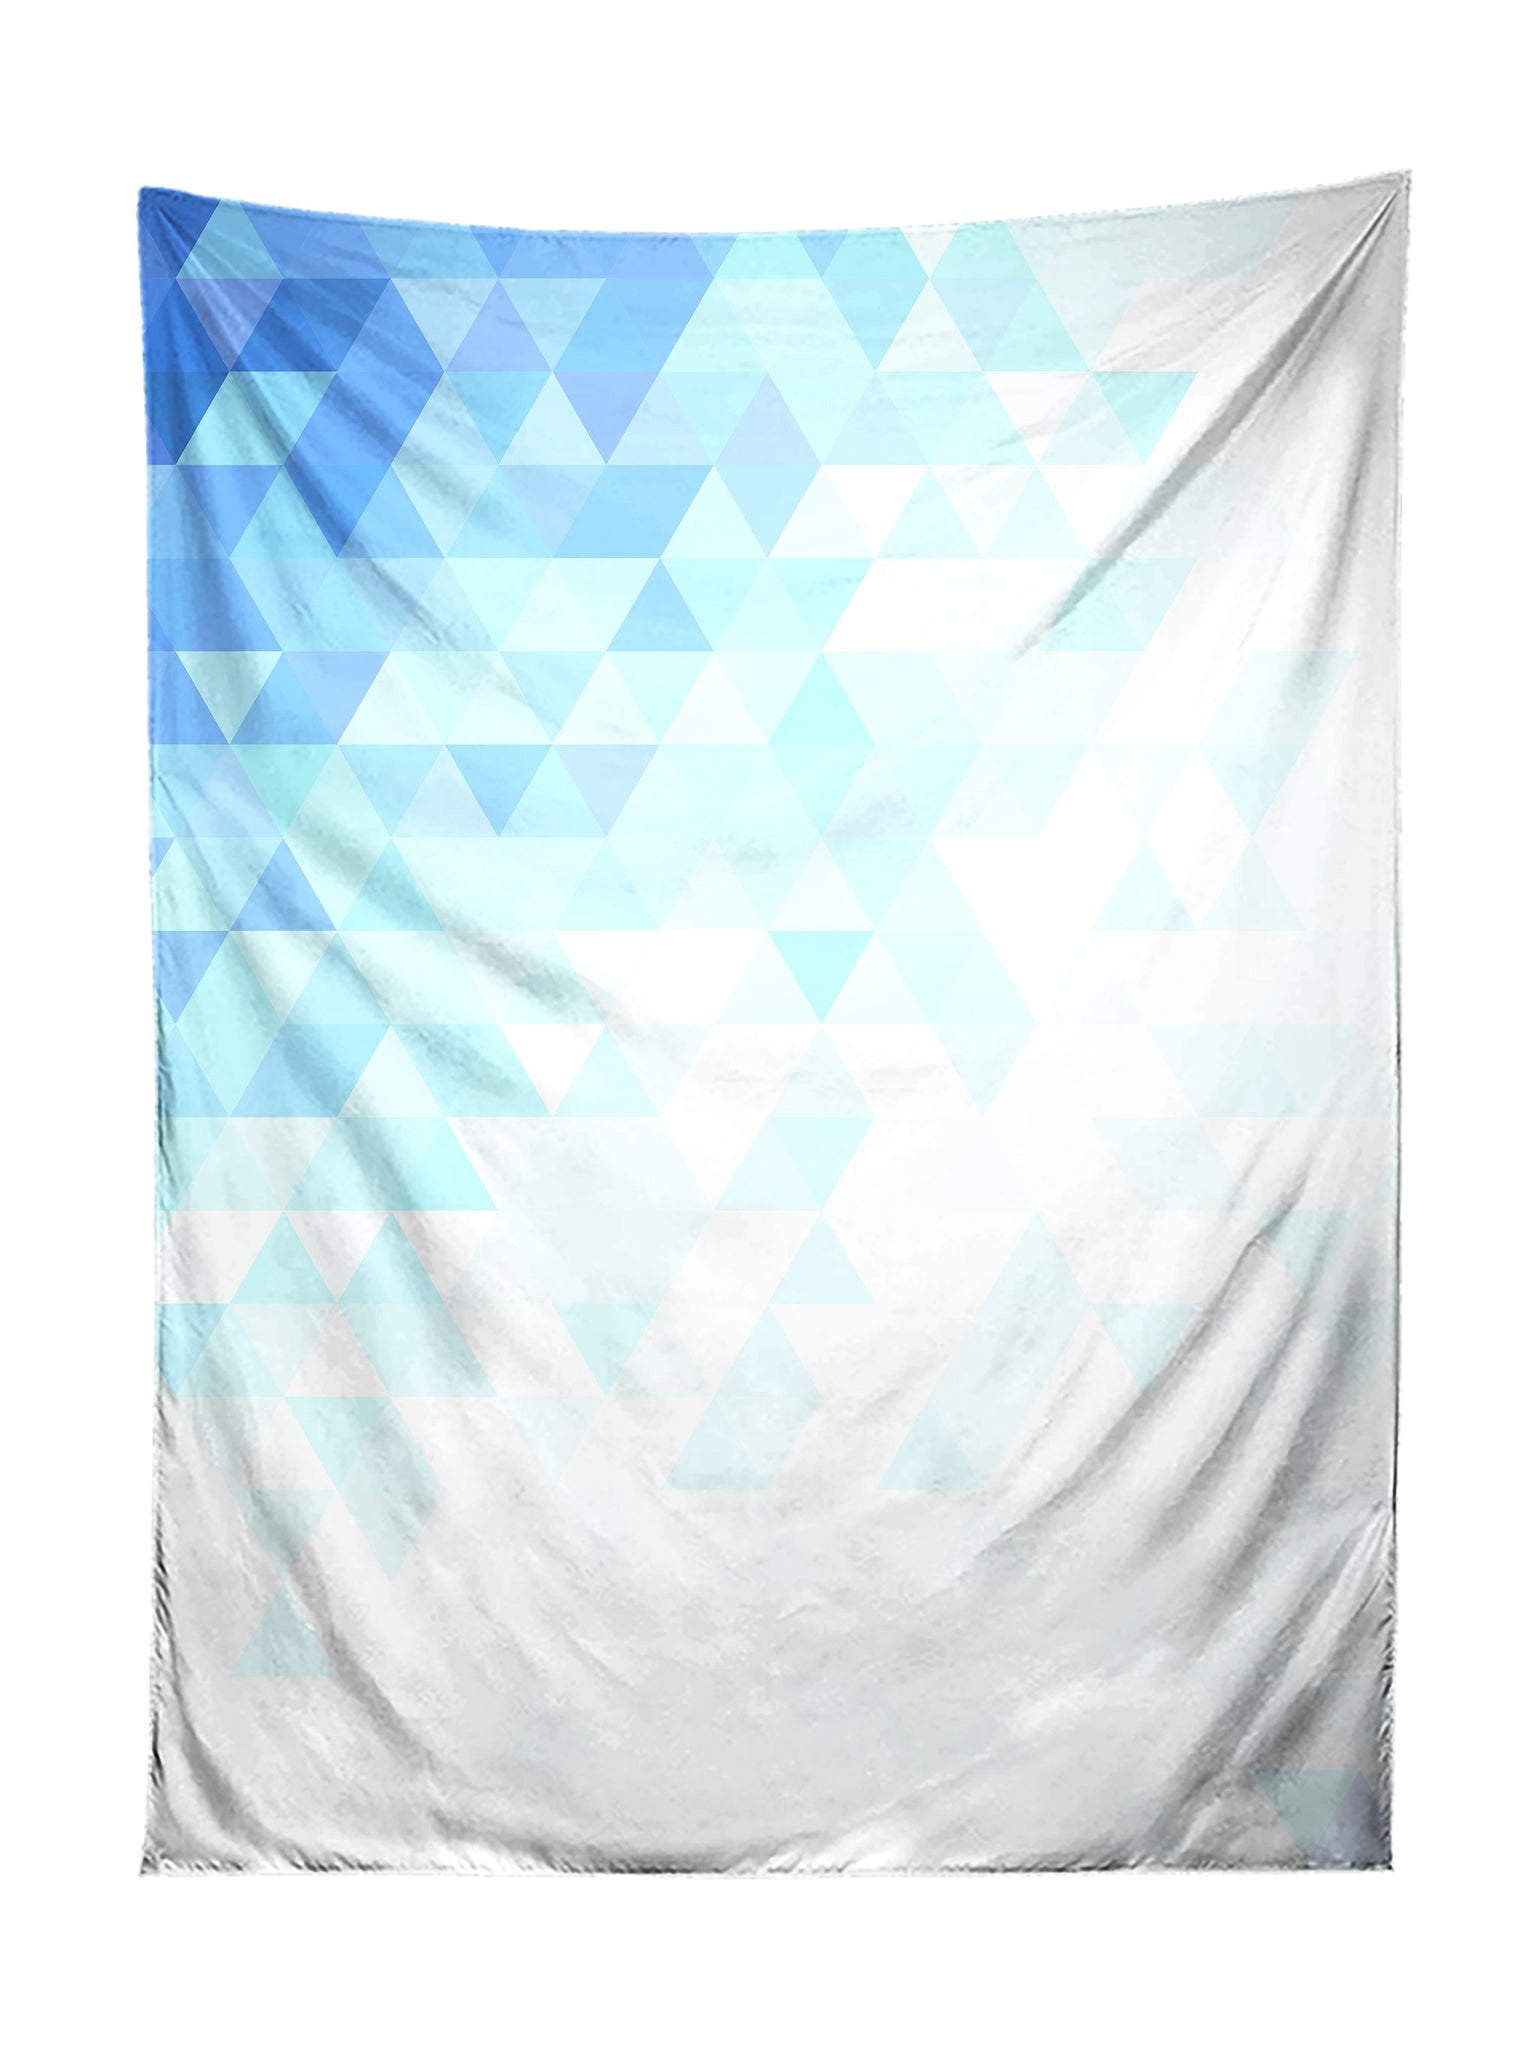 Vertical hanging view of all over print blue & white polygon pattern tapestry by GratefullyDyed Apparel.